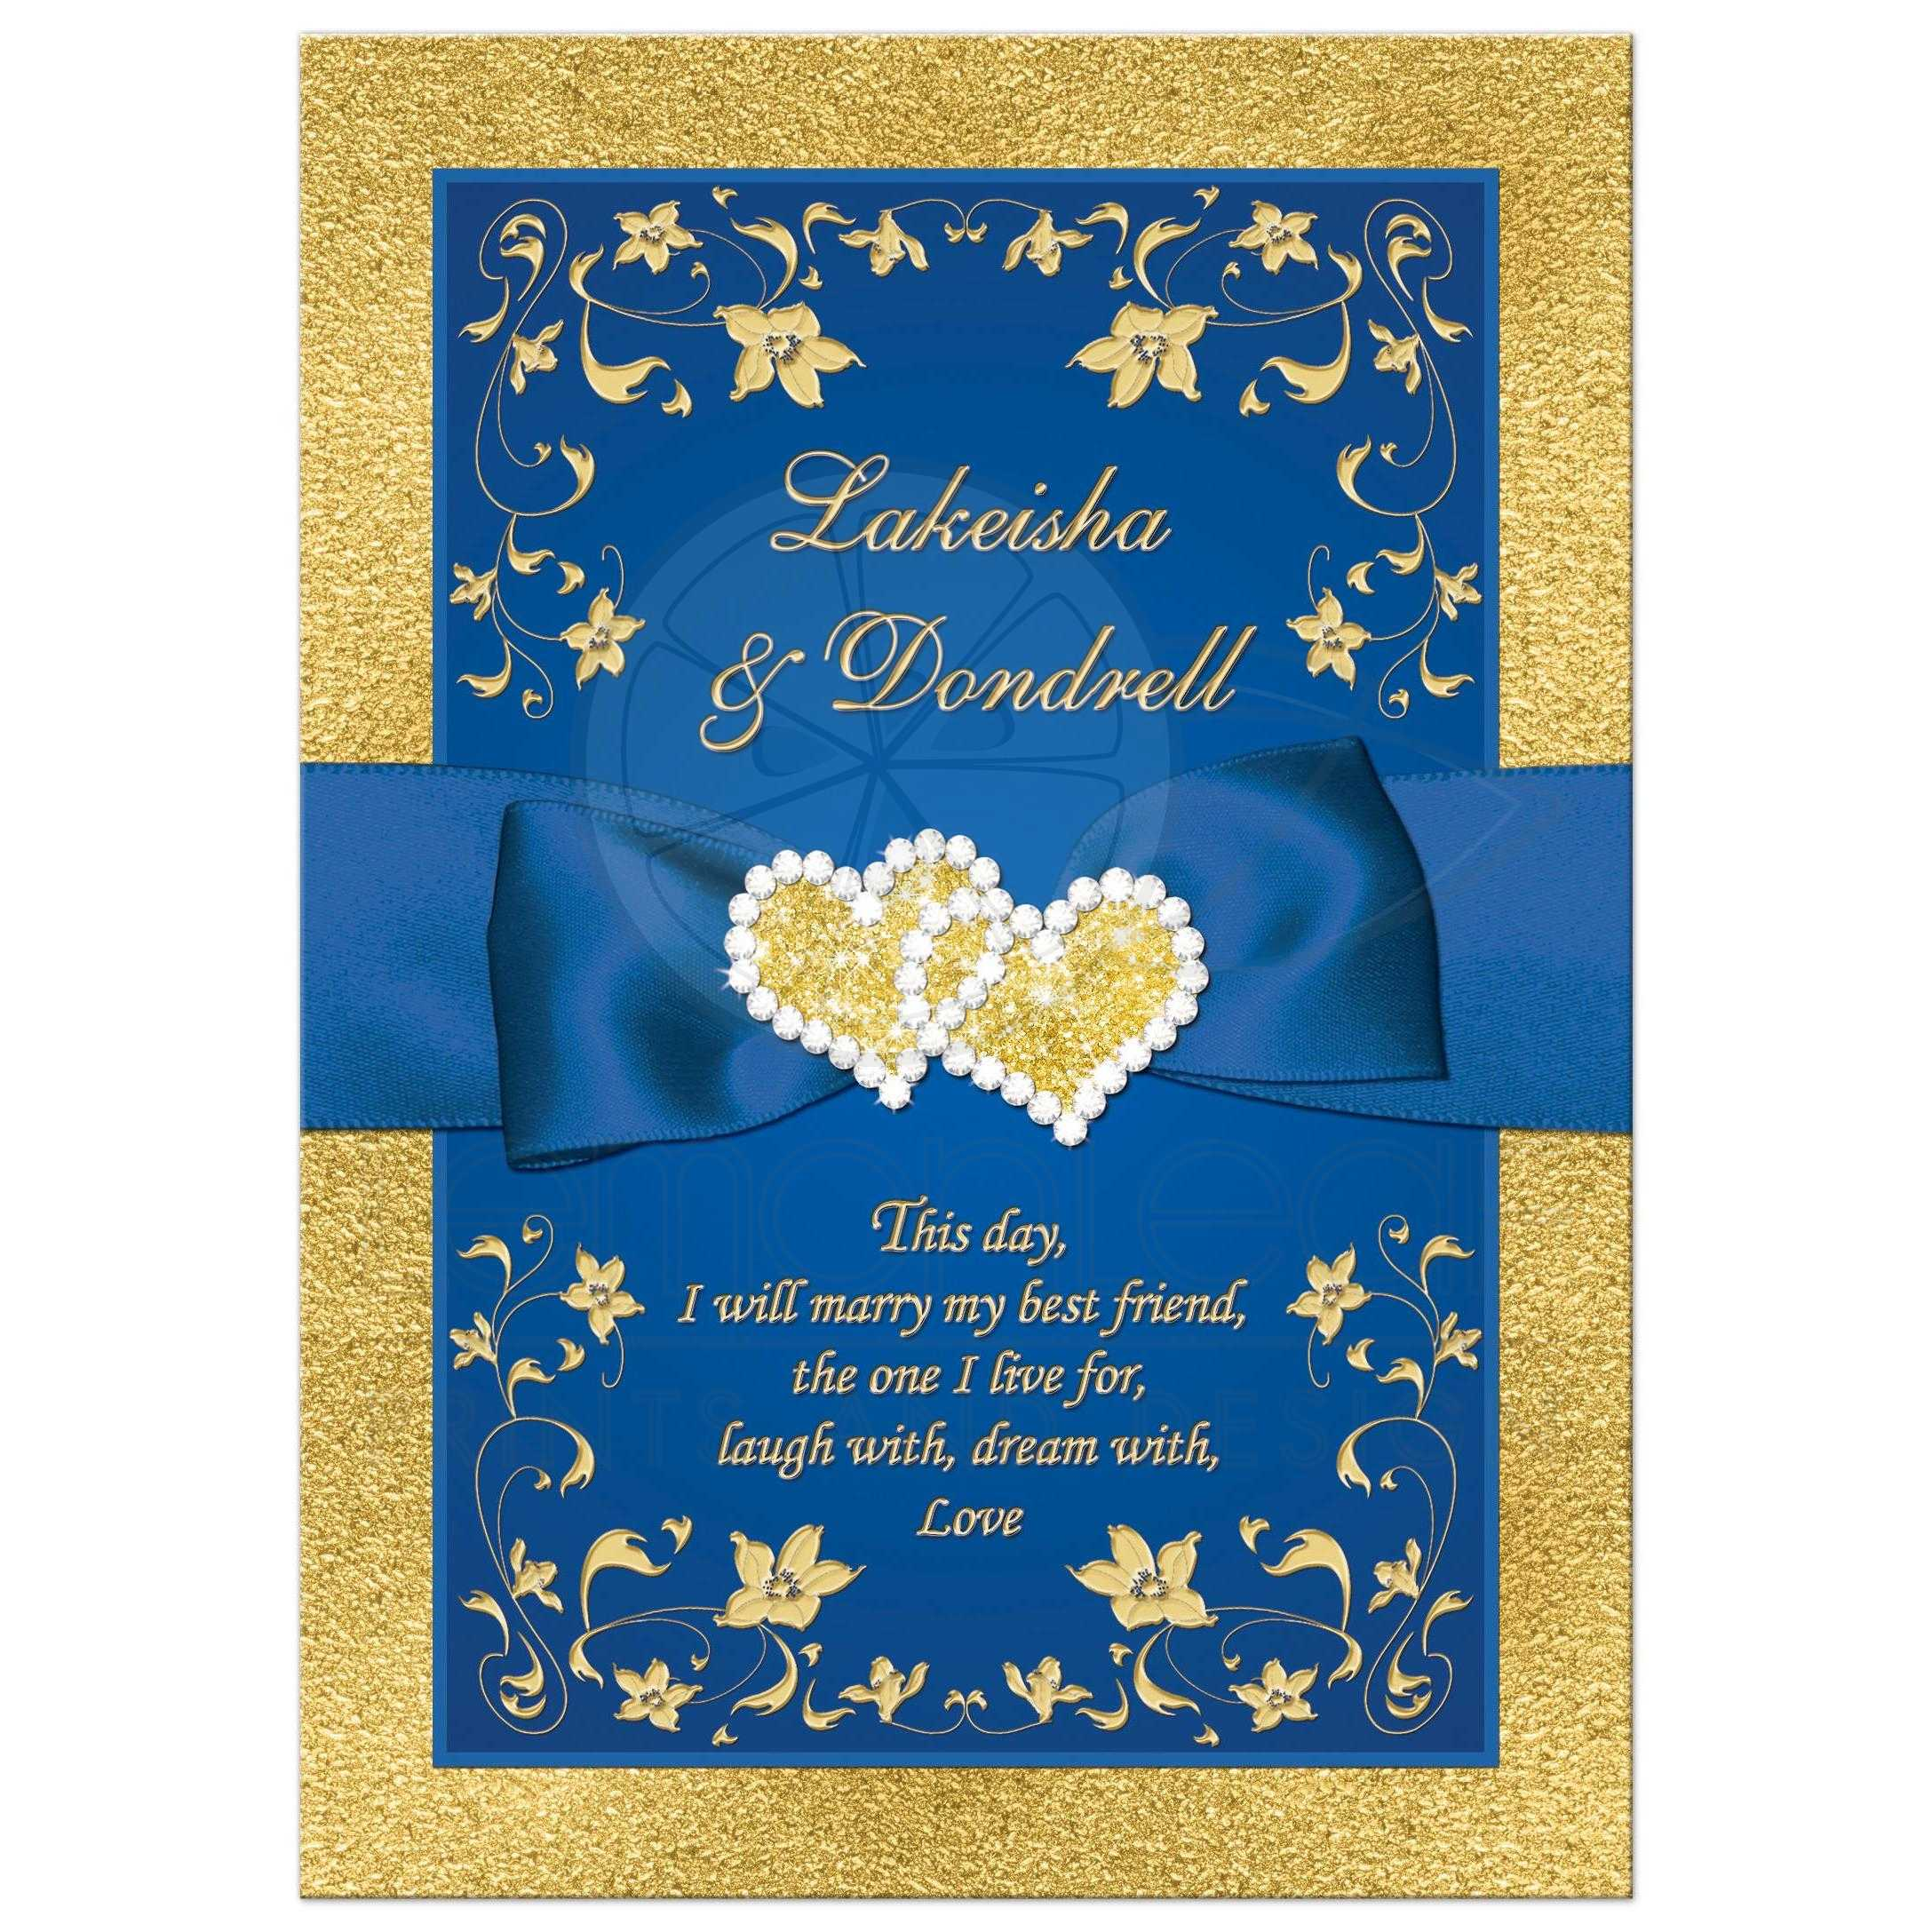 Rroyal Blue And Gold Foil Floral Wedding Invitation With Joined Jewel Hearts Ribbon: Blue And Gold Wedding Invitations At Websimilar.org